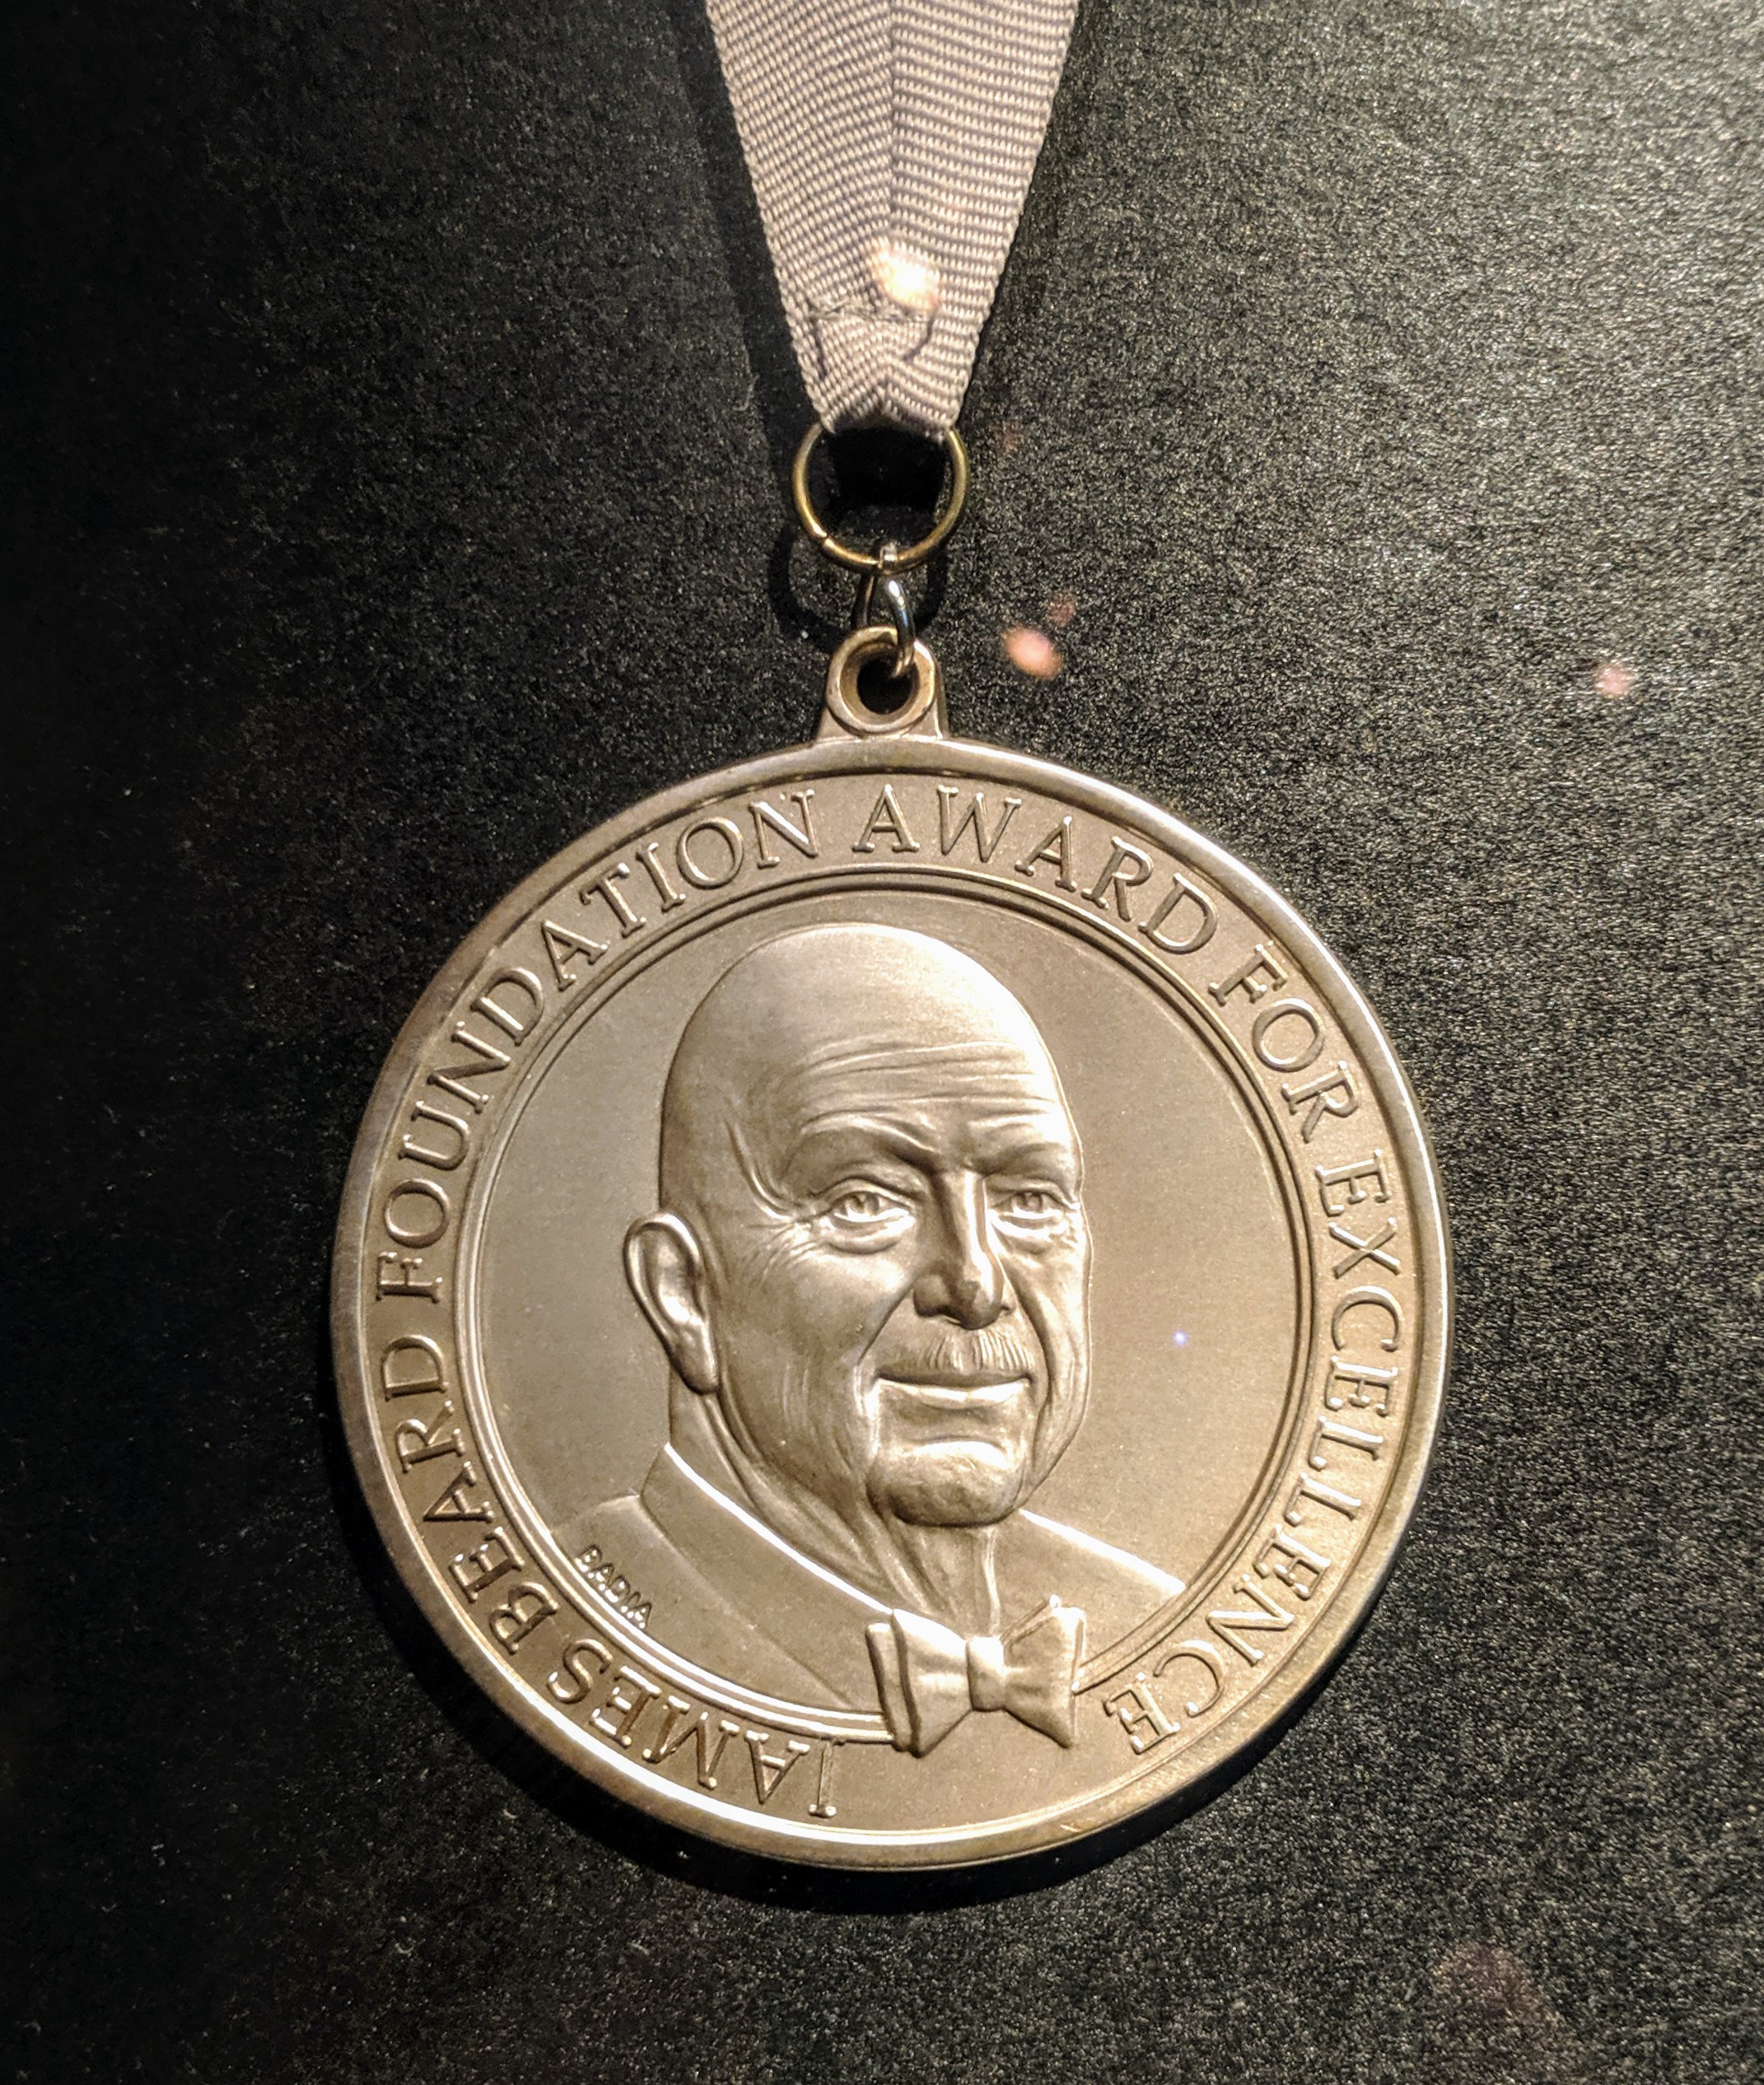 James Beard Foundation Award Wikipedia